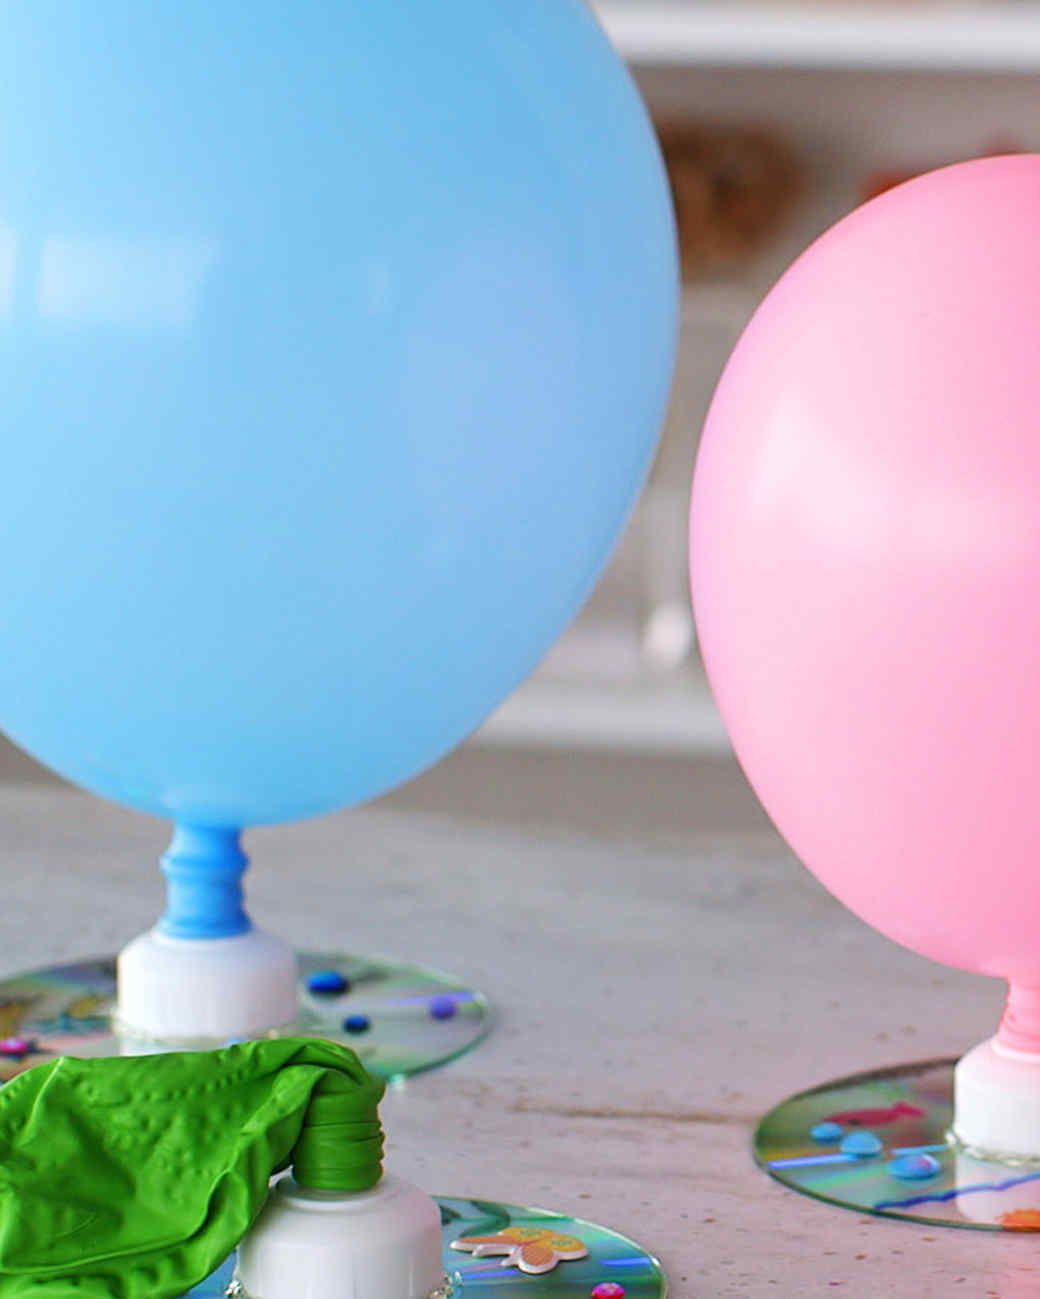 Stem School Grants: Balloon-Propelled Hovercraft